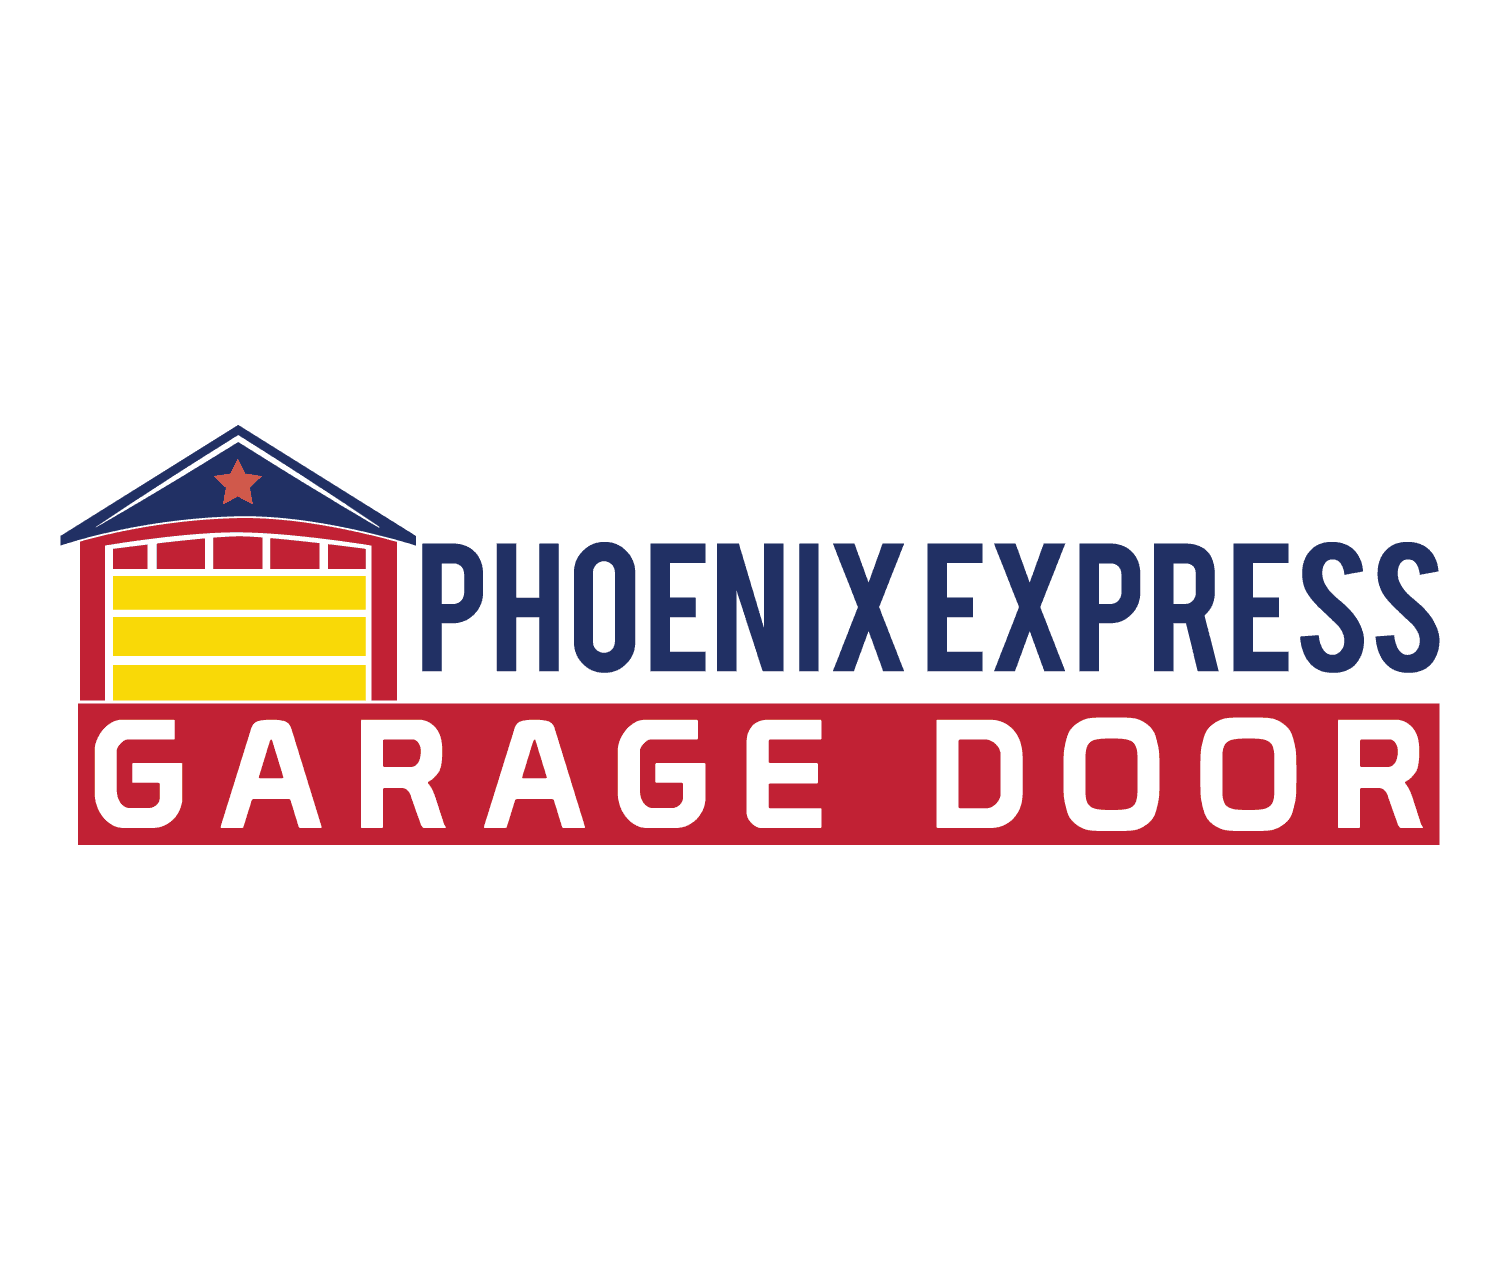 hinges g hardware door doors garage phoenix